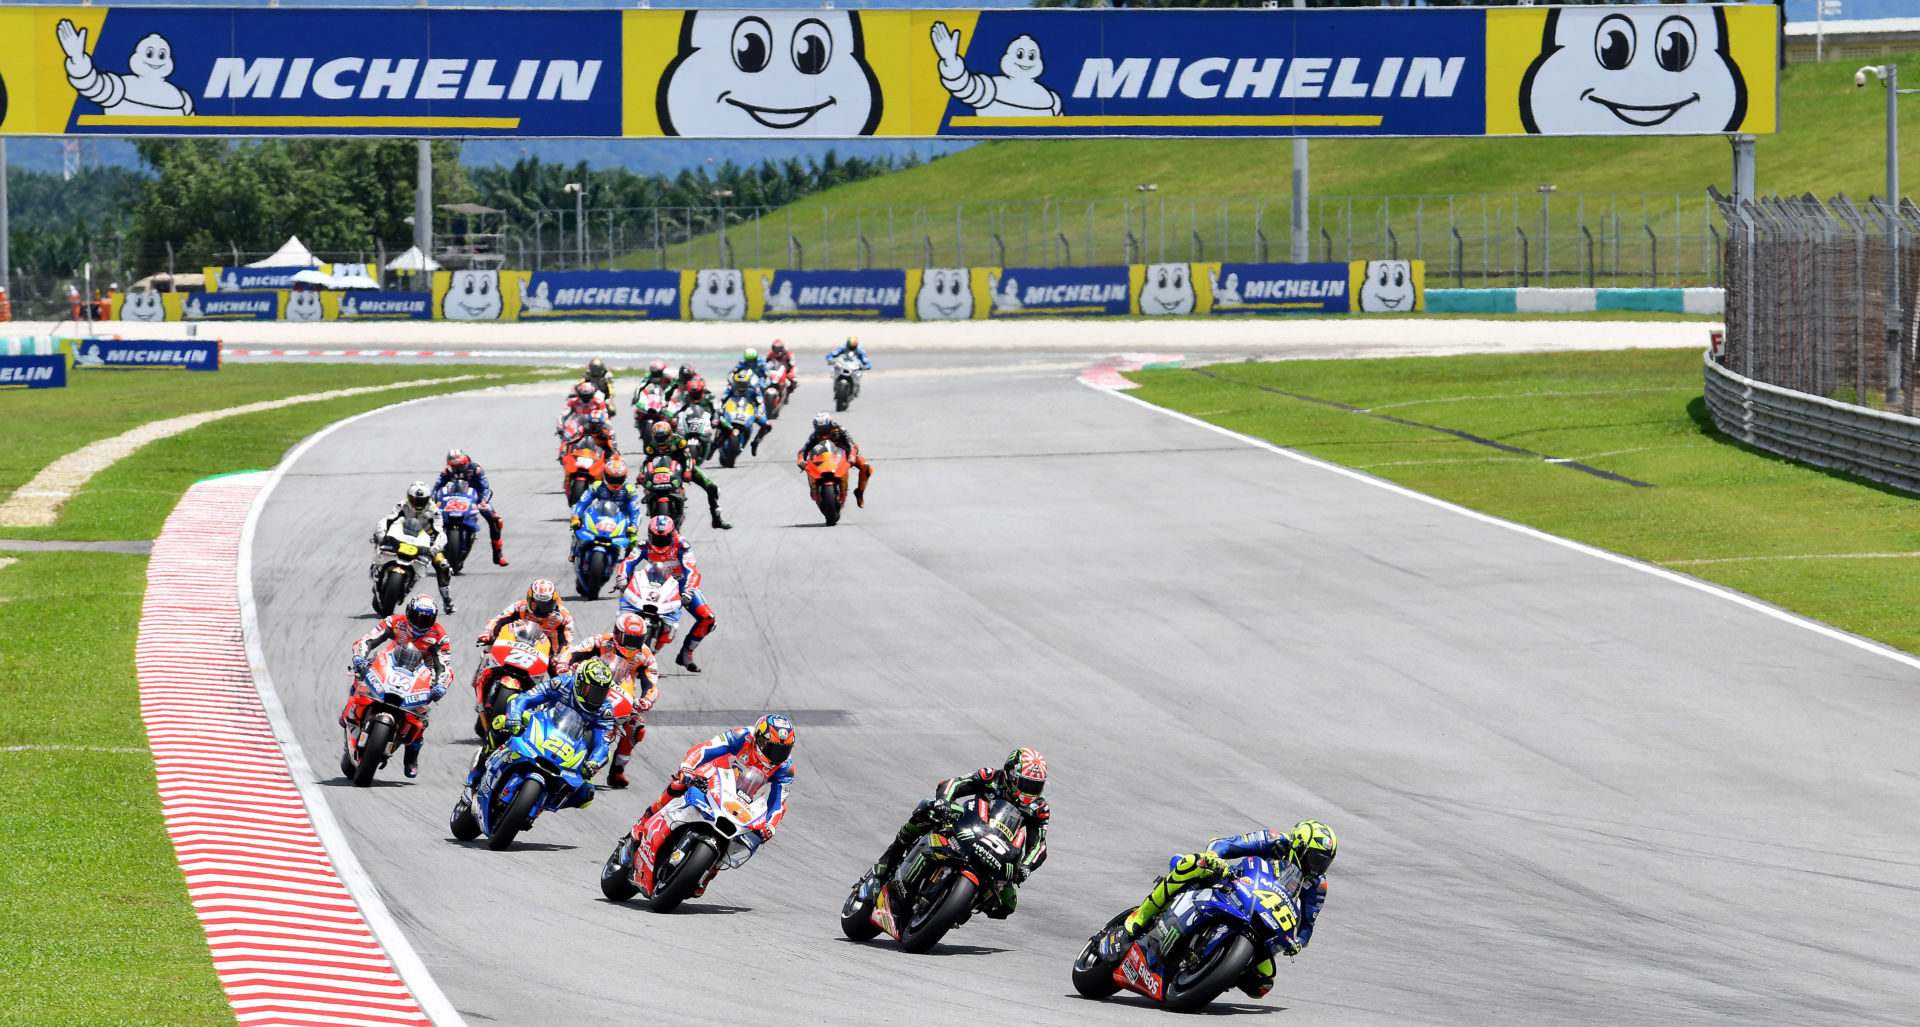 The start of the 2018 Malaysian Grand Prix at Sepang International Circuit. Photo courtesy of Michelin.